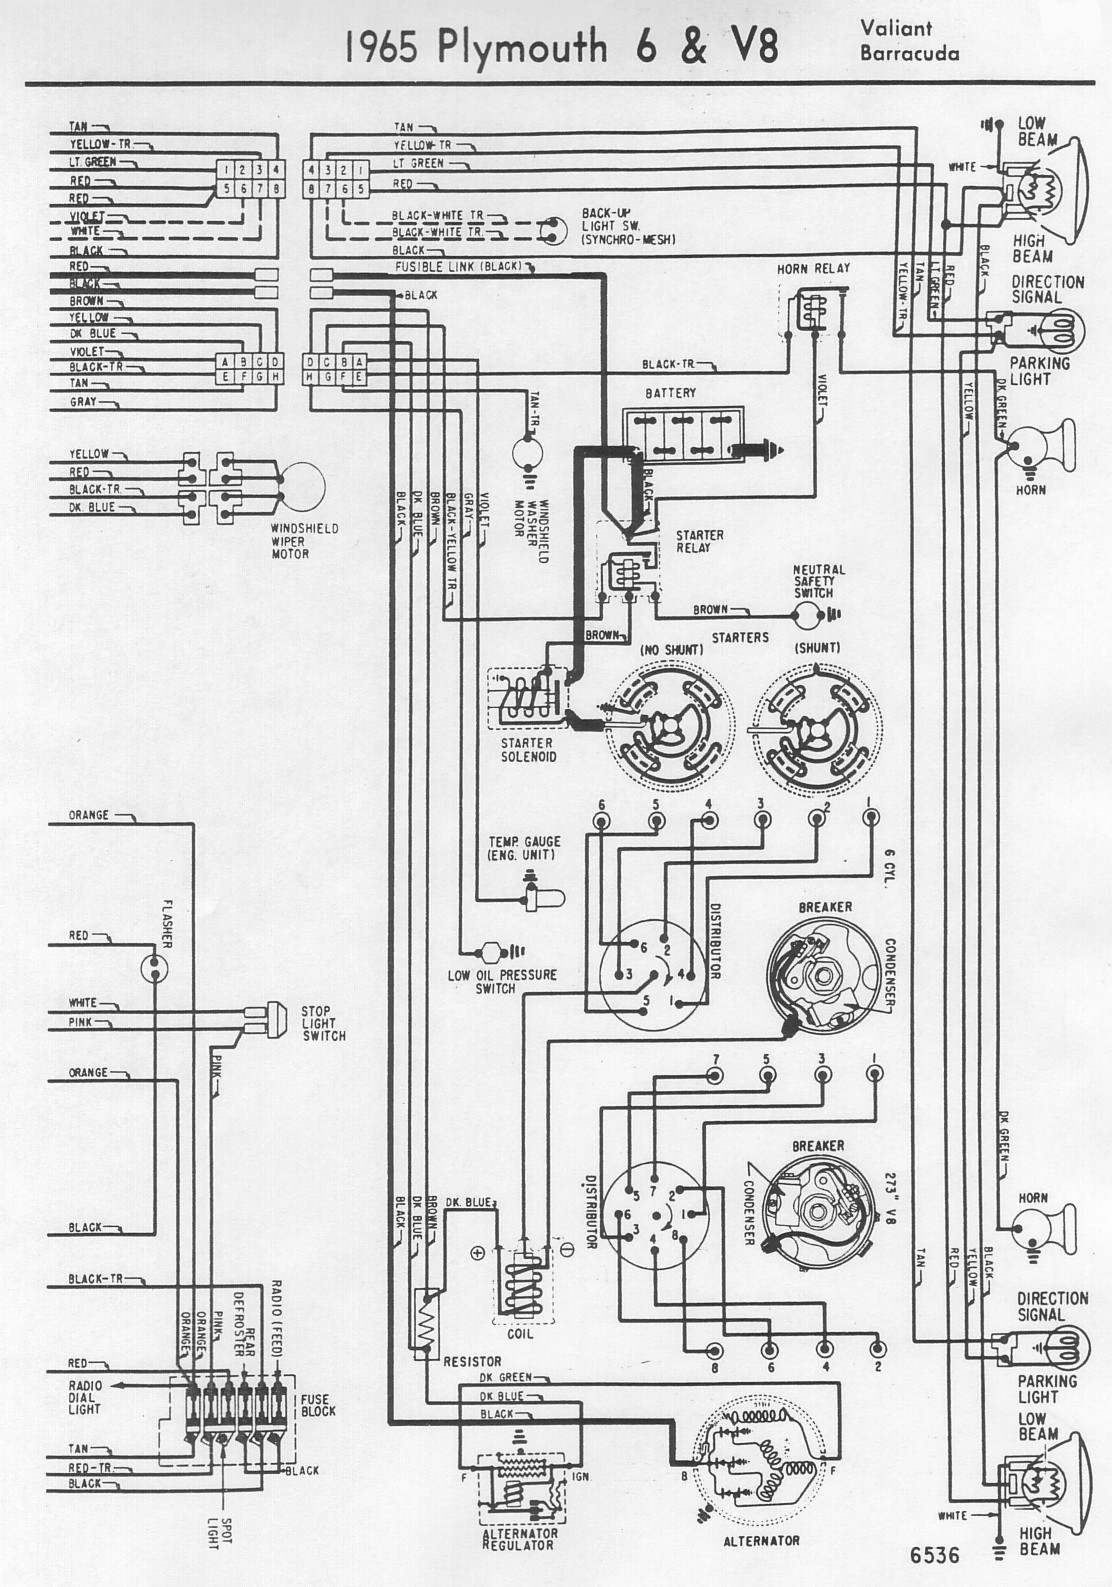 wiring diagram plymouth barracuda car wiring diagrams explained u2022 rh ethermag co Mopar Wiring Diagrams Positive Ground Plymouth Wiring-Diagram